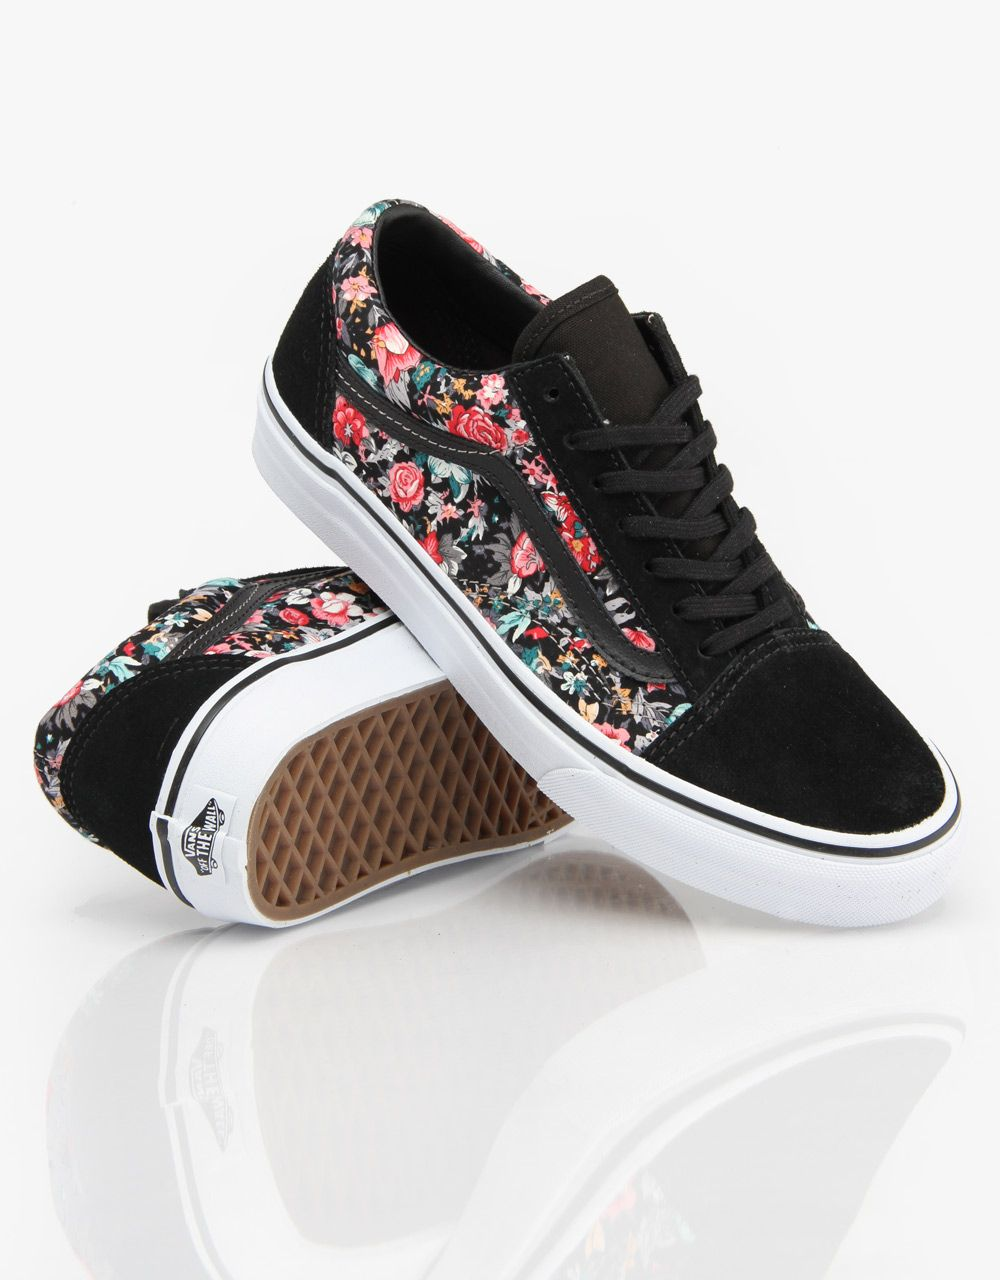 2bc3d088cfec Vans Old Skool Girls Skate Shoes - Multi Floral/Black/True White -  RouteOne.co.uk